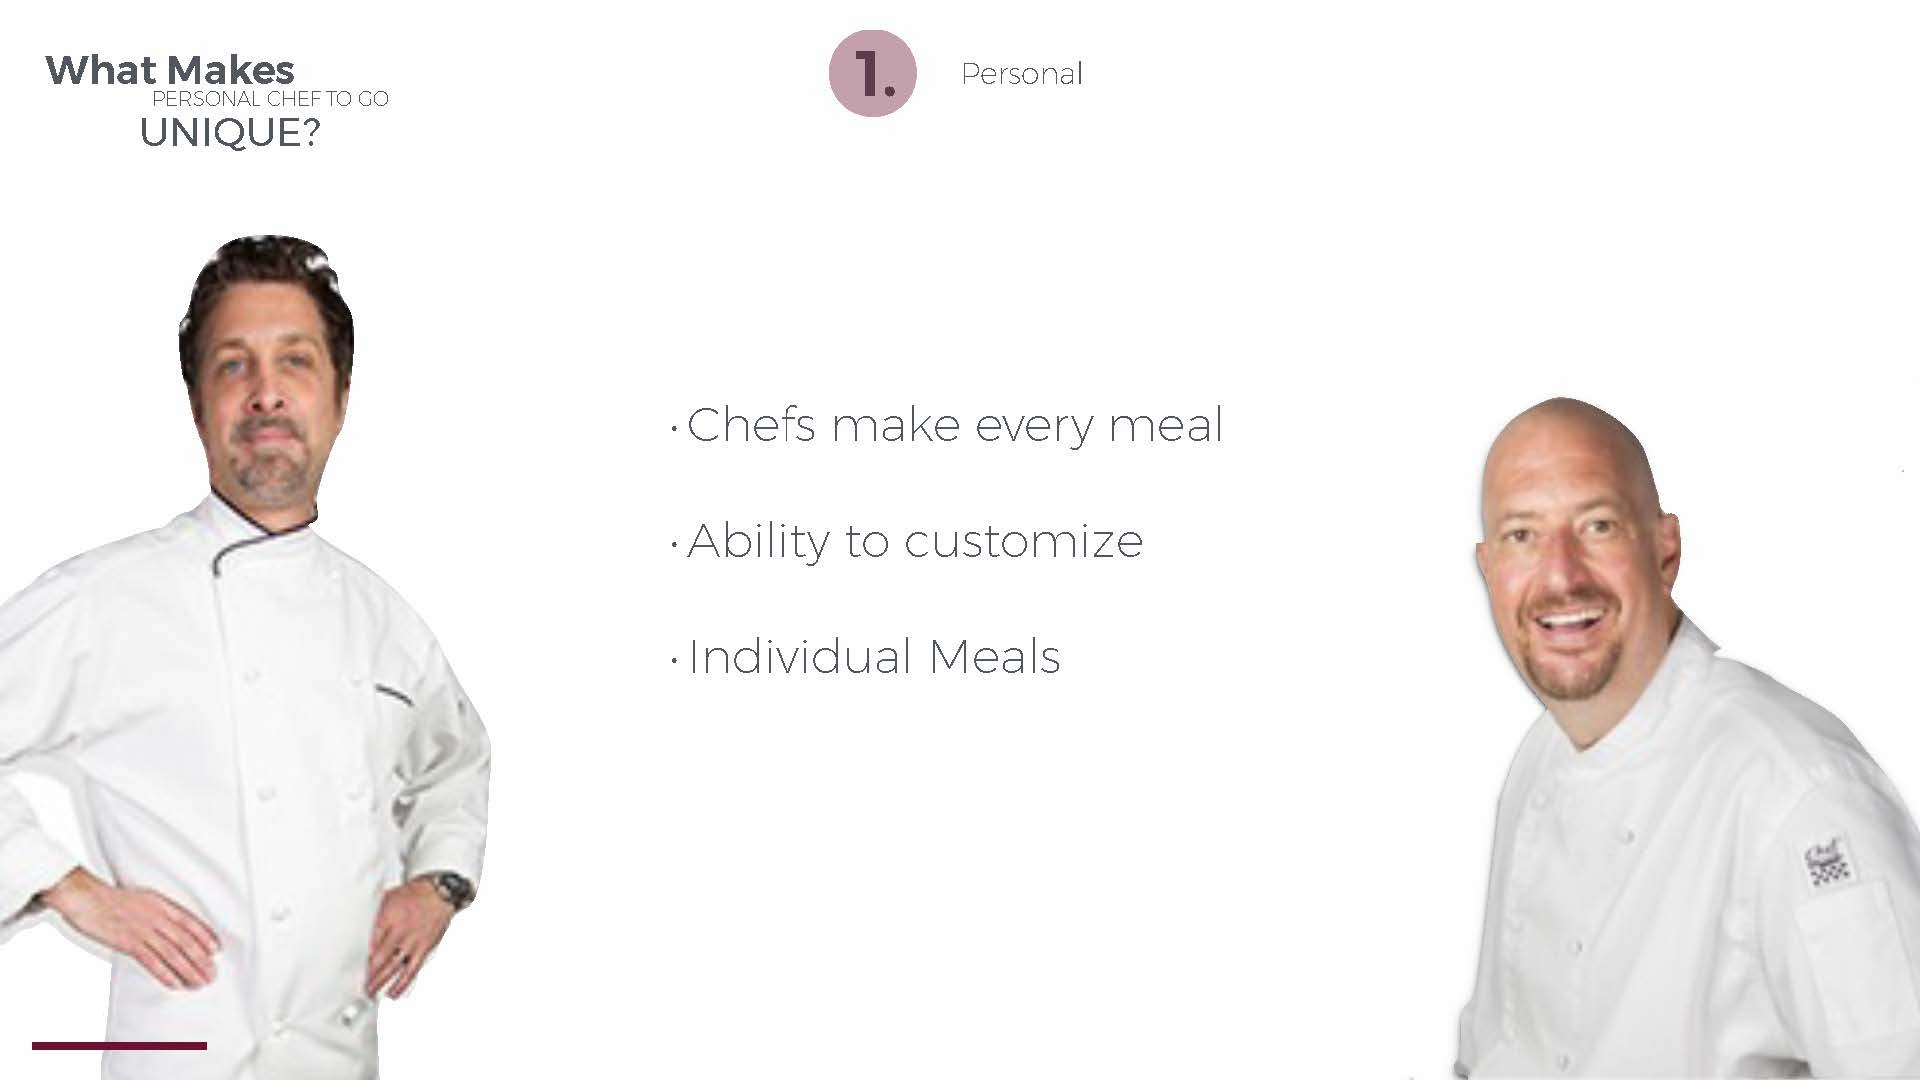 PERSONAL CHEF TO GO DECK-WEB_Page_14.jpg